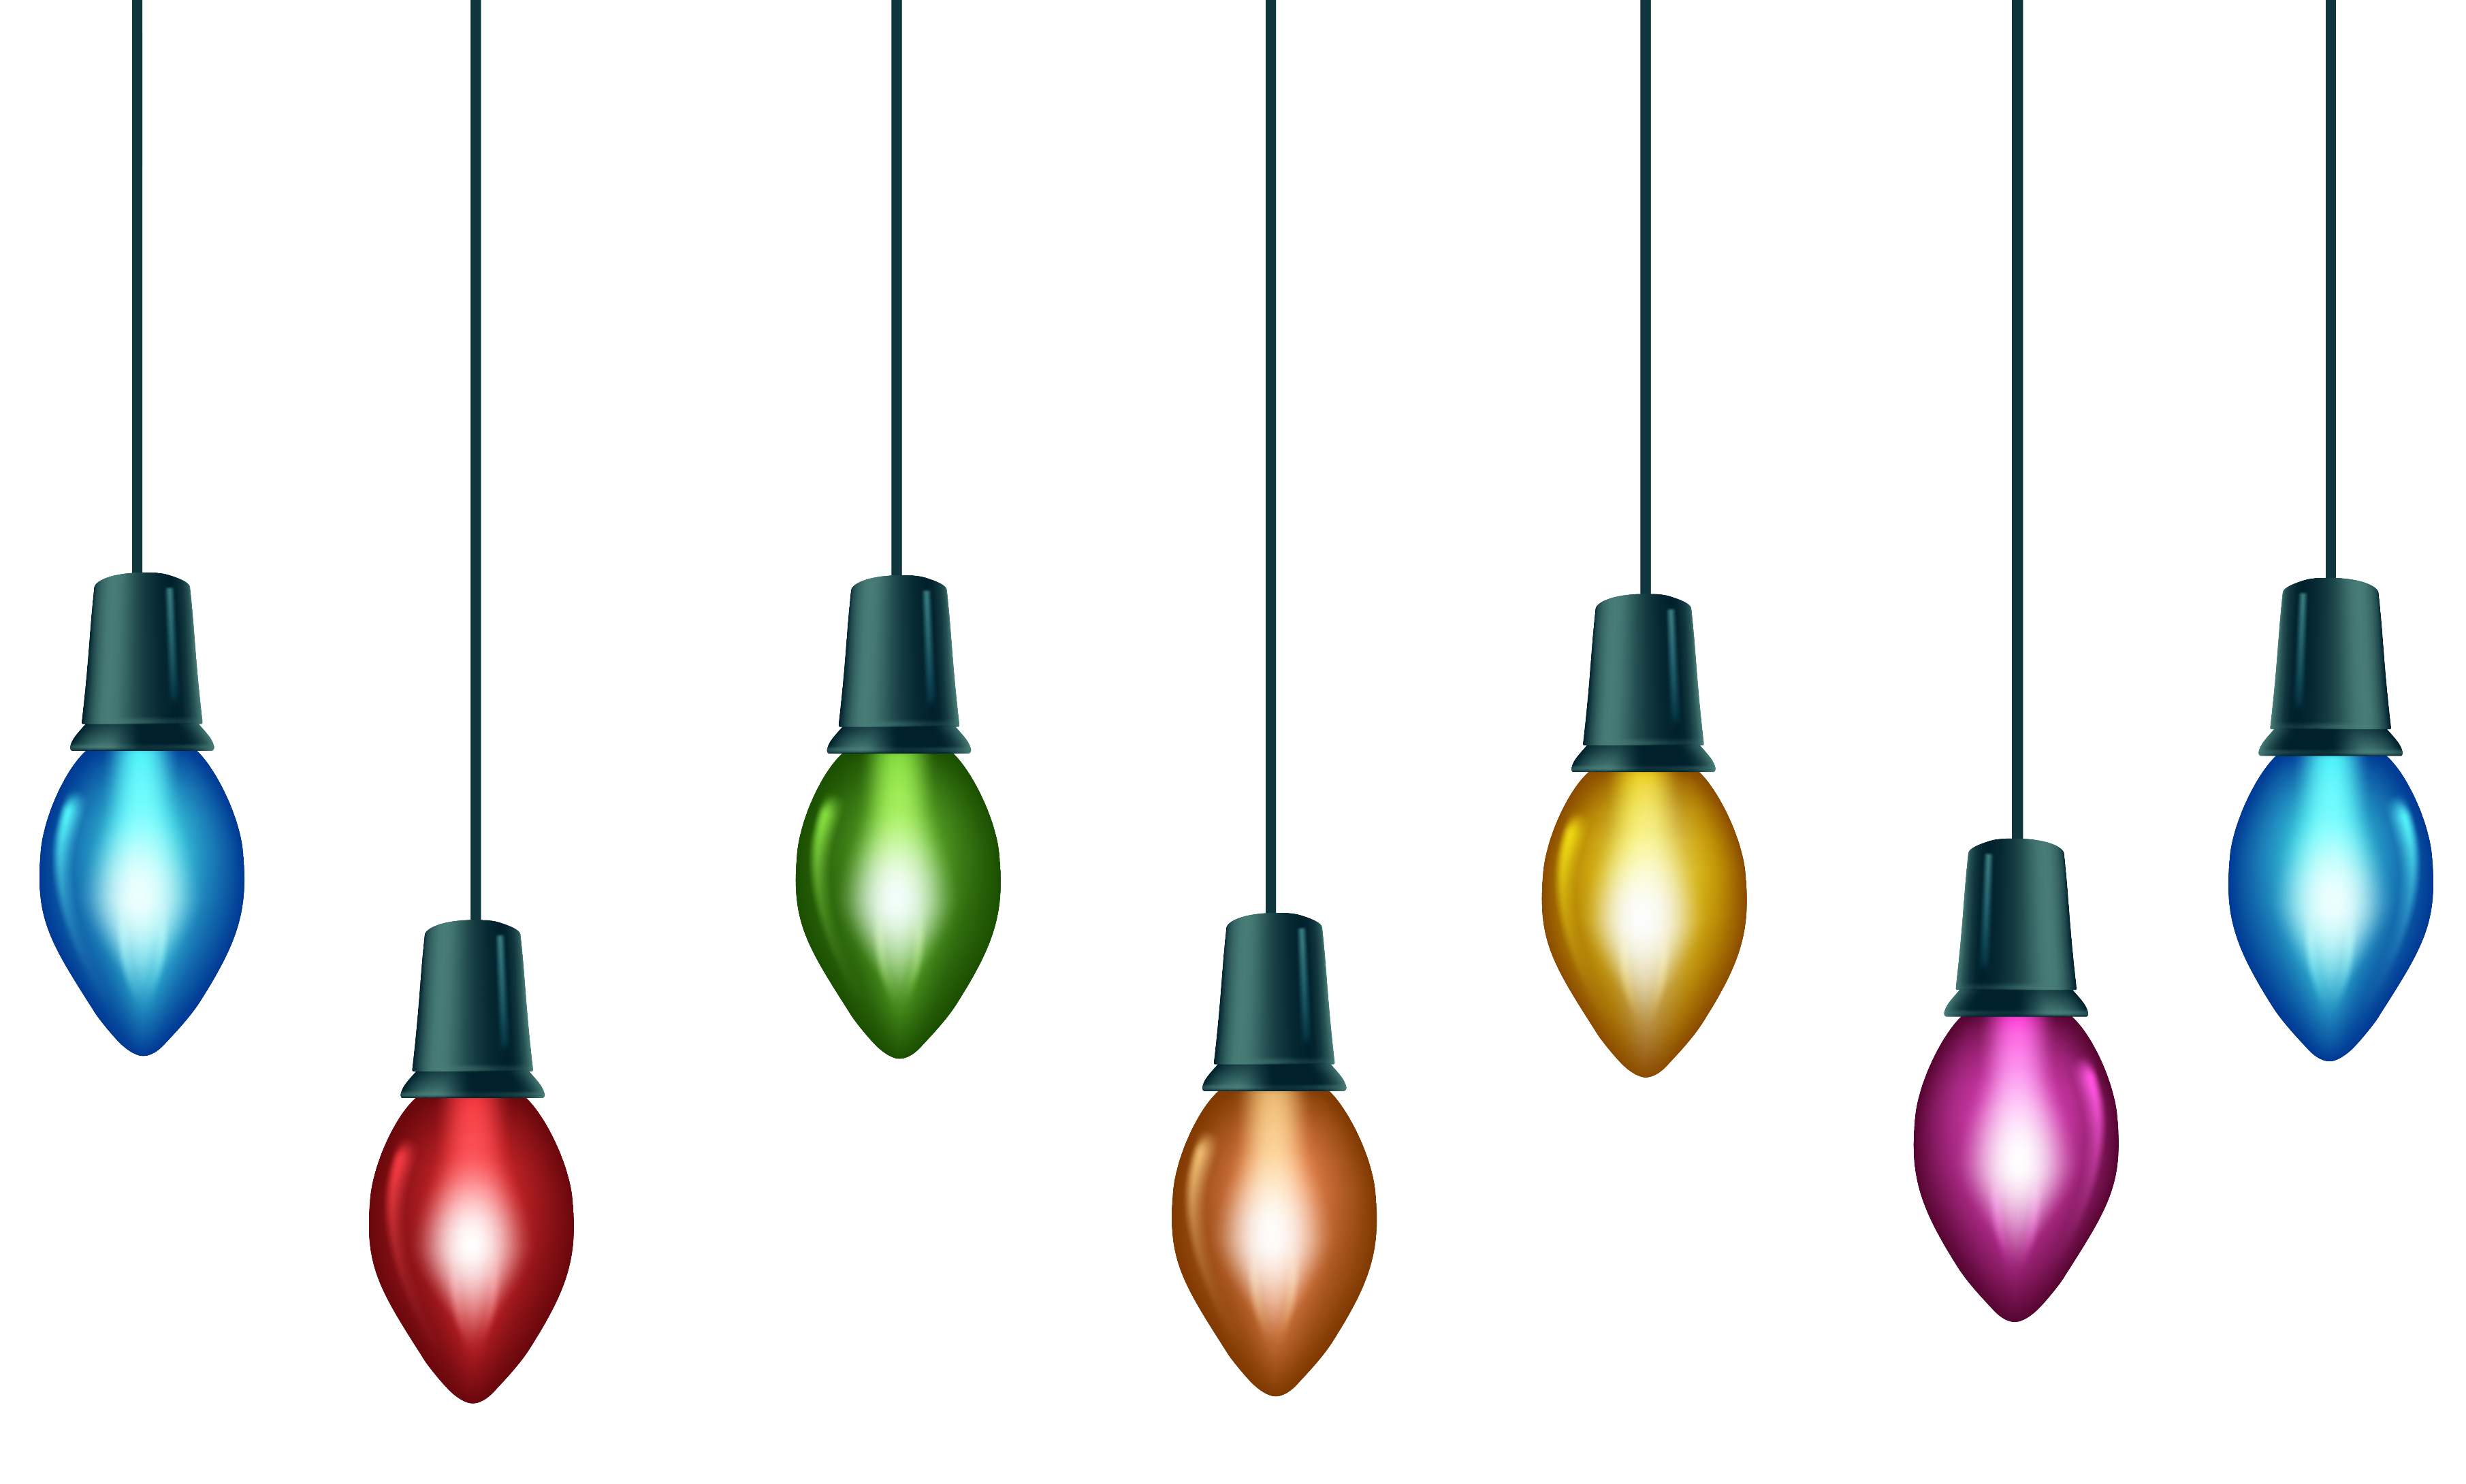 Lights clipart #15